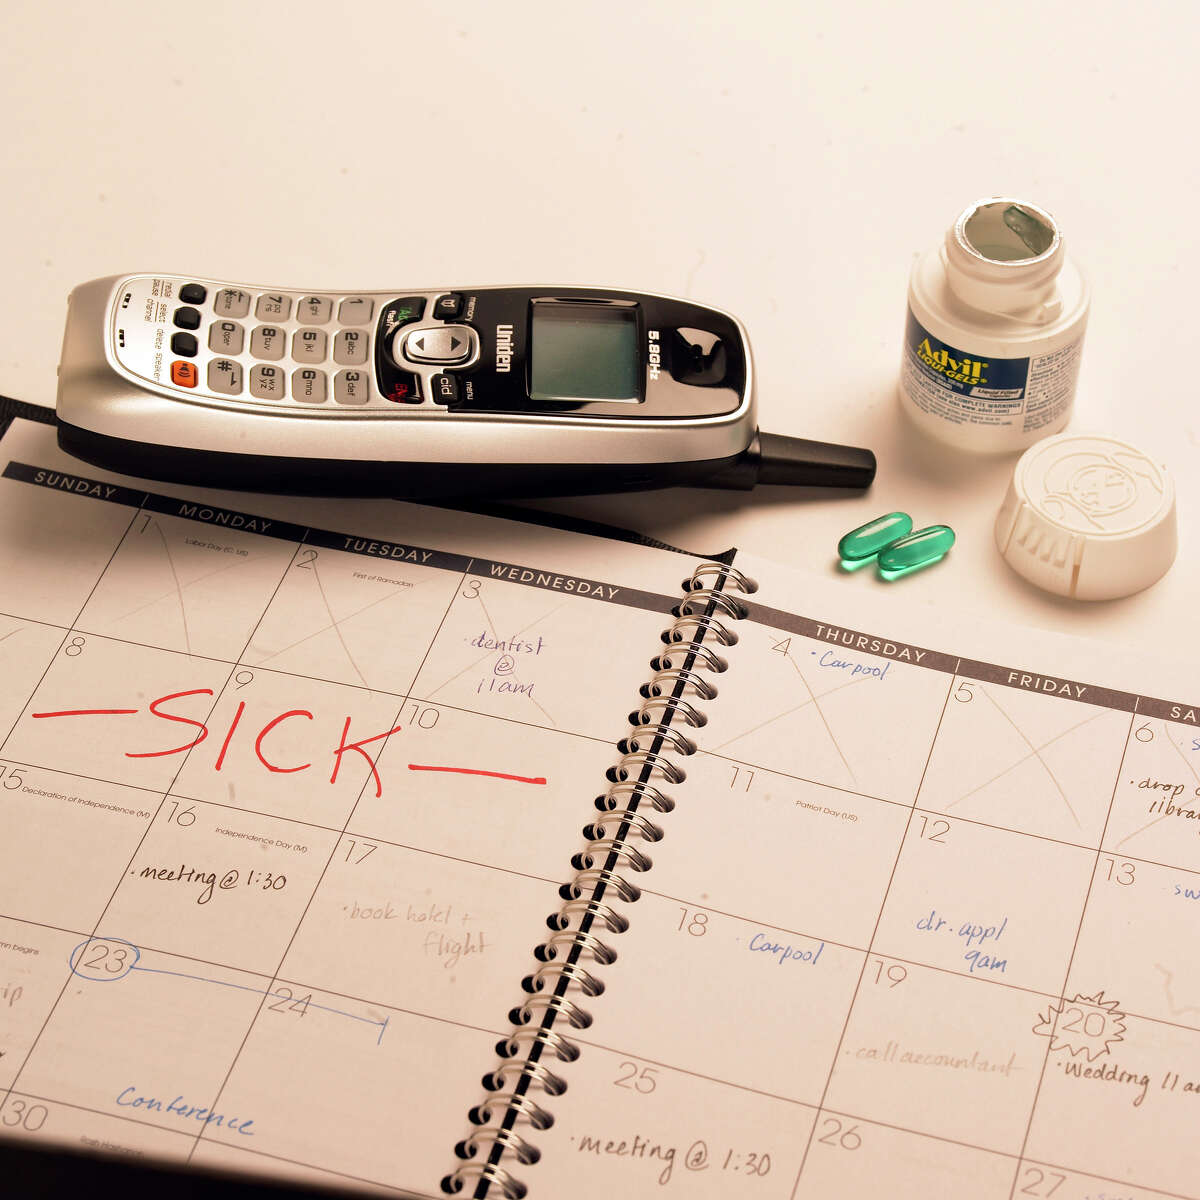 Stay home if you're sick. That's the advice from the nation's top health officials on how to stop the spread of contagious diseases, such as influenza, tuberculosis, gastrointestinal viruses, conjunctivitis and many other conditions that spread person-to-person. This is a photo illustration of a calendar with sick days marked on it, for the cover of the HEALTH section shot in the Times studio June 18, 2008.